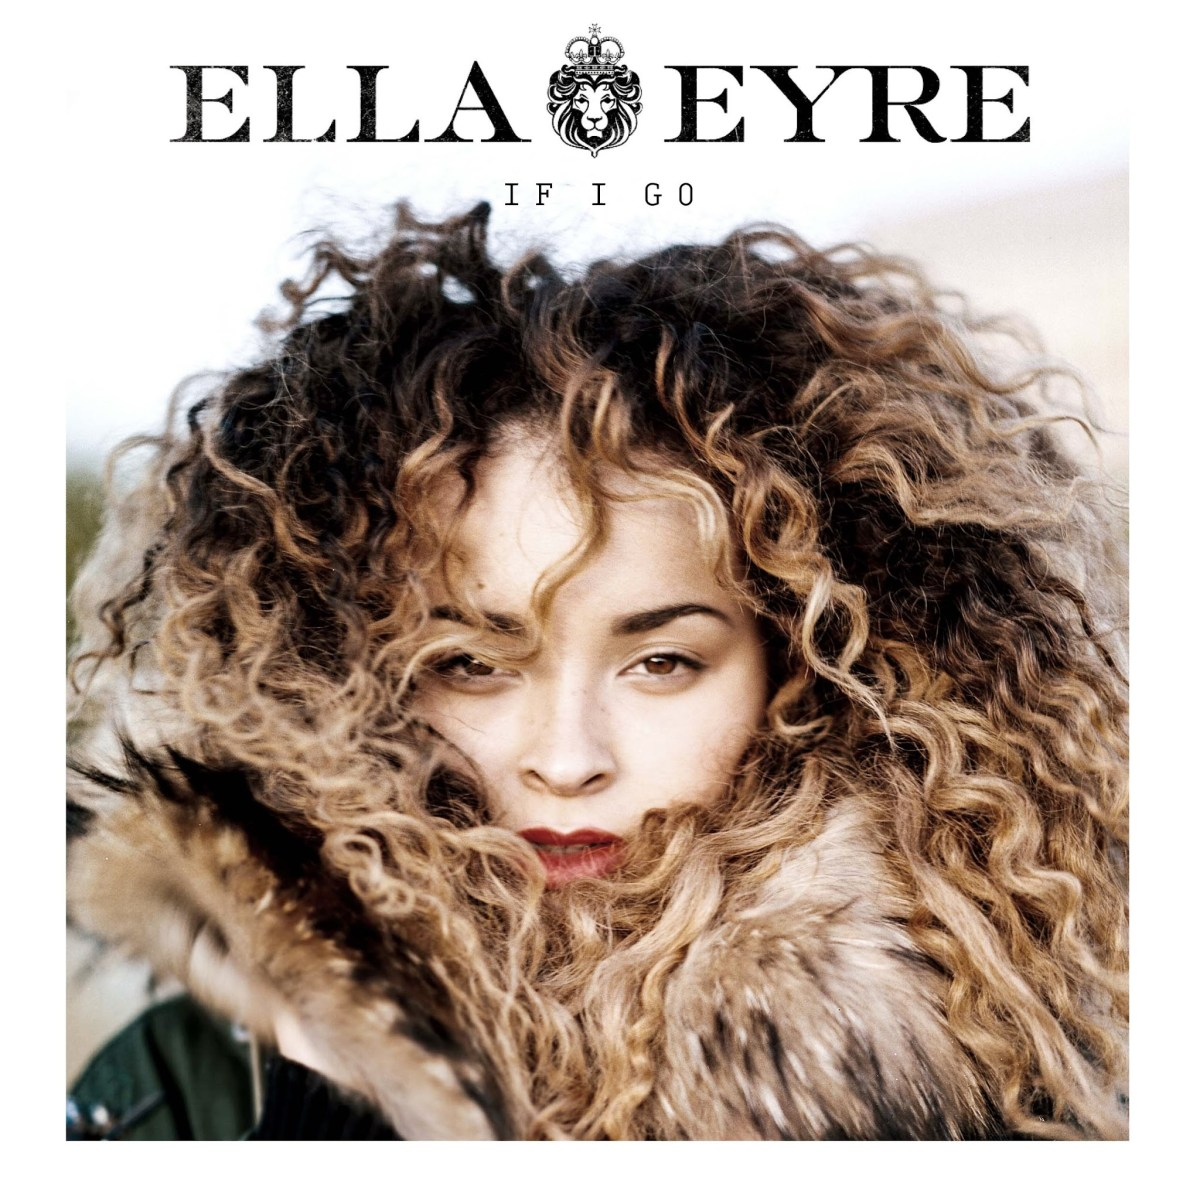 Hot Video Alert: Ella Eyre - If I Go